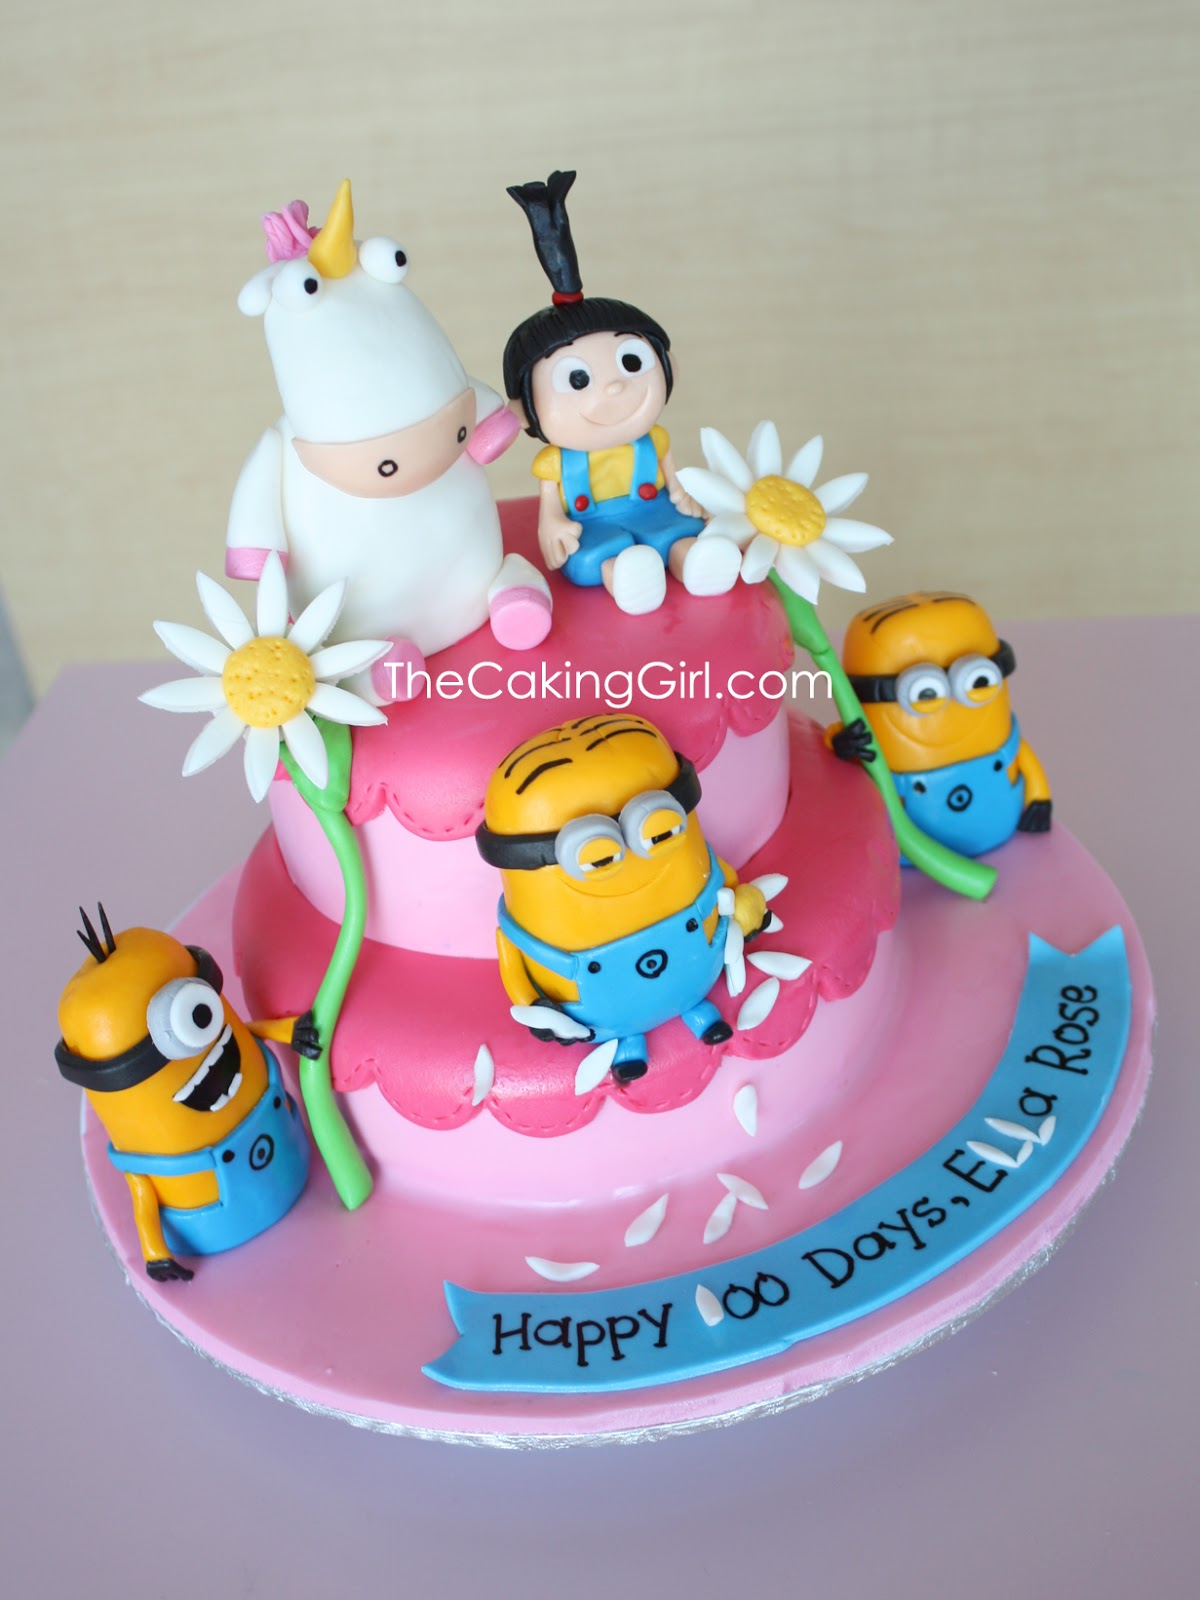 Thecakinggirl Cute Despicable Me Cake